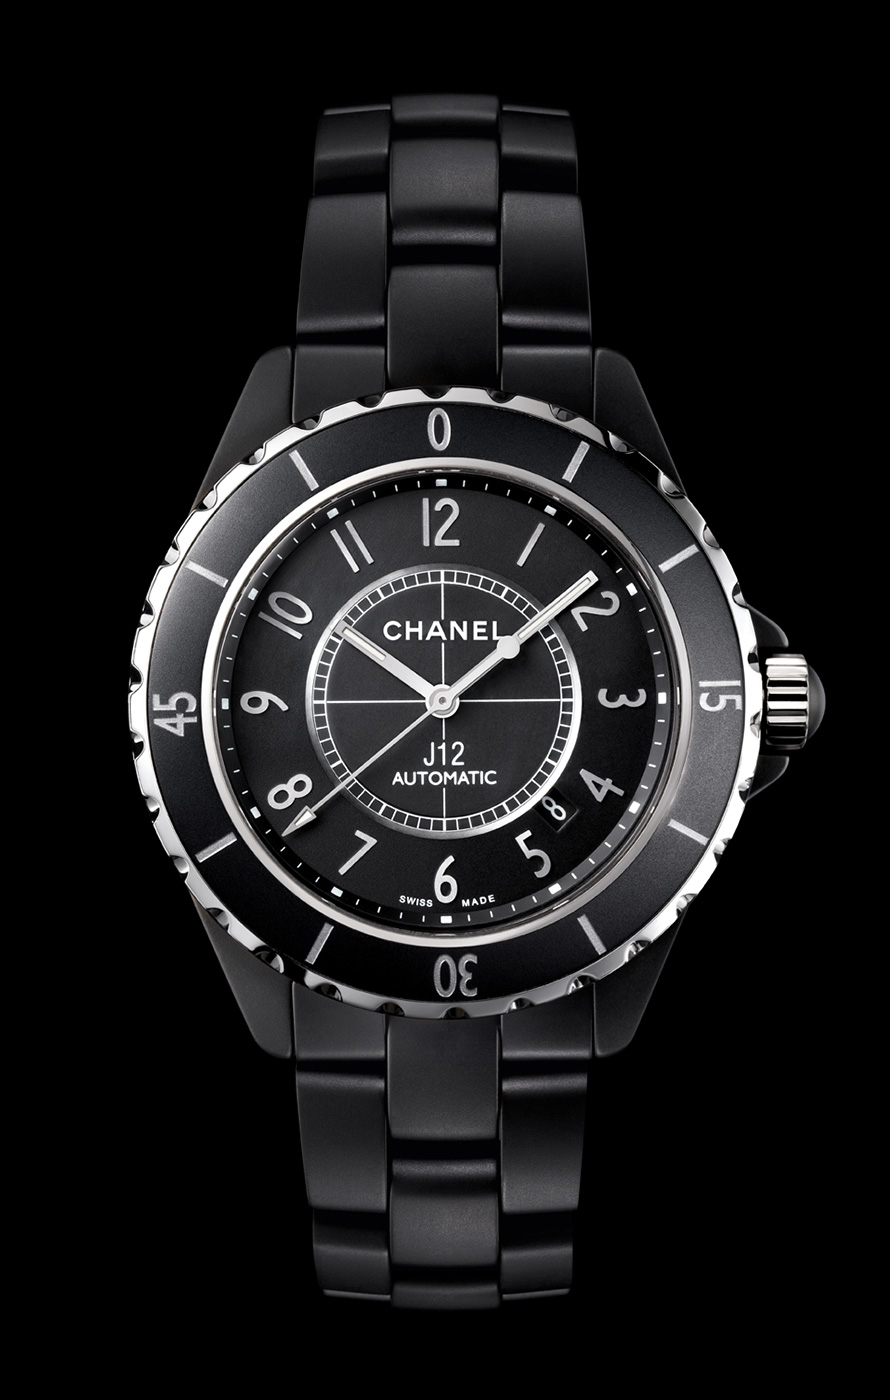 Tag Heuer Uk >> Mechanical Dive Watches for Women: Chanel J12 - Luxury Watches Online